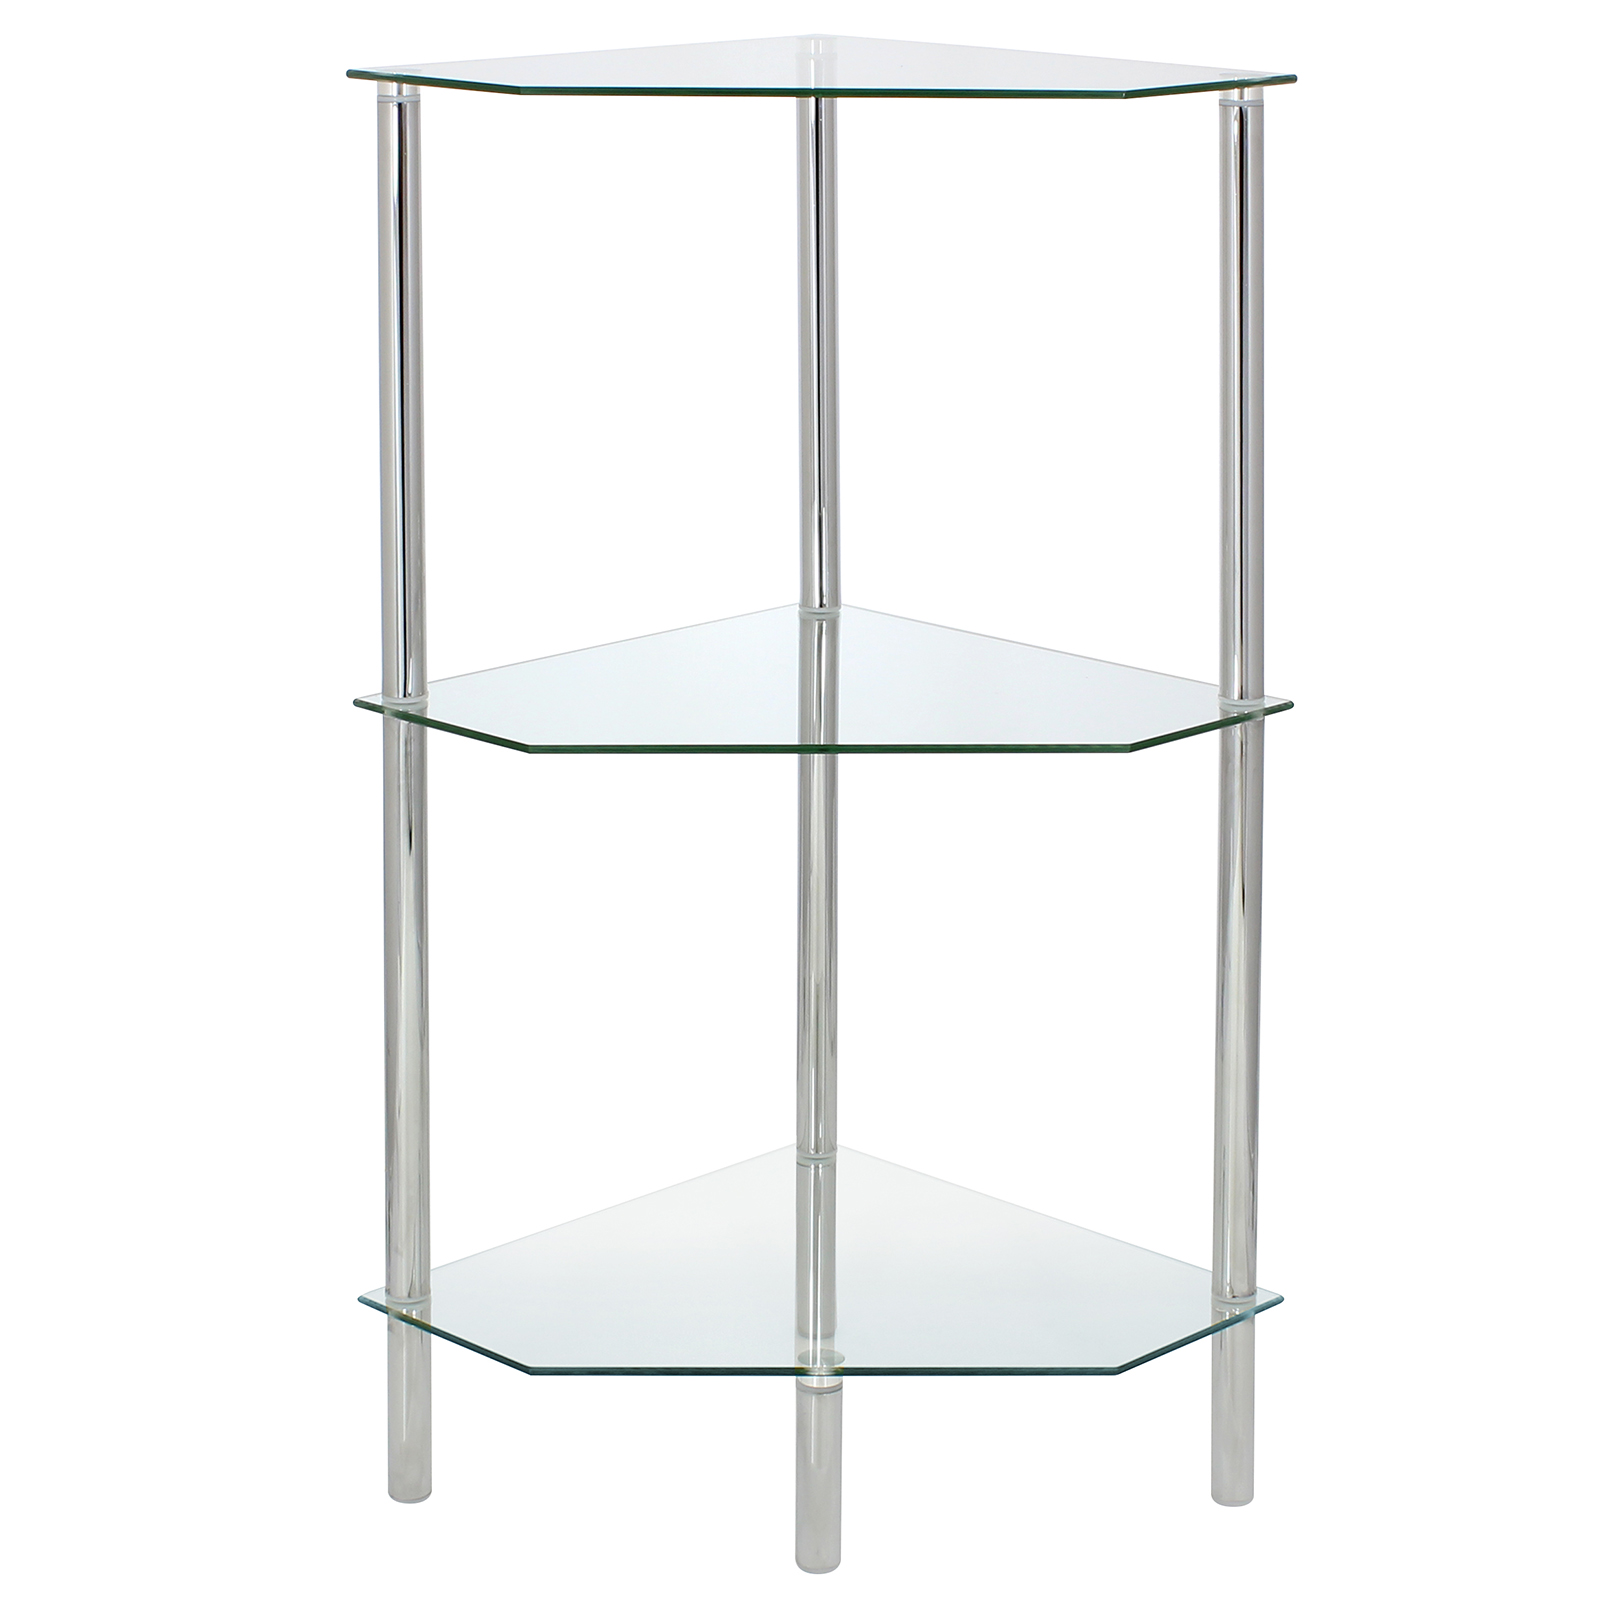 Glass Corner Shelf Shelving Unit Display Bathroom Hall End